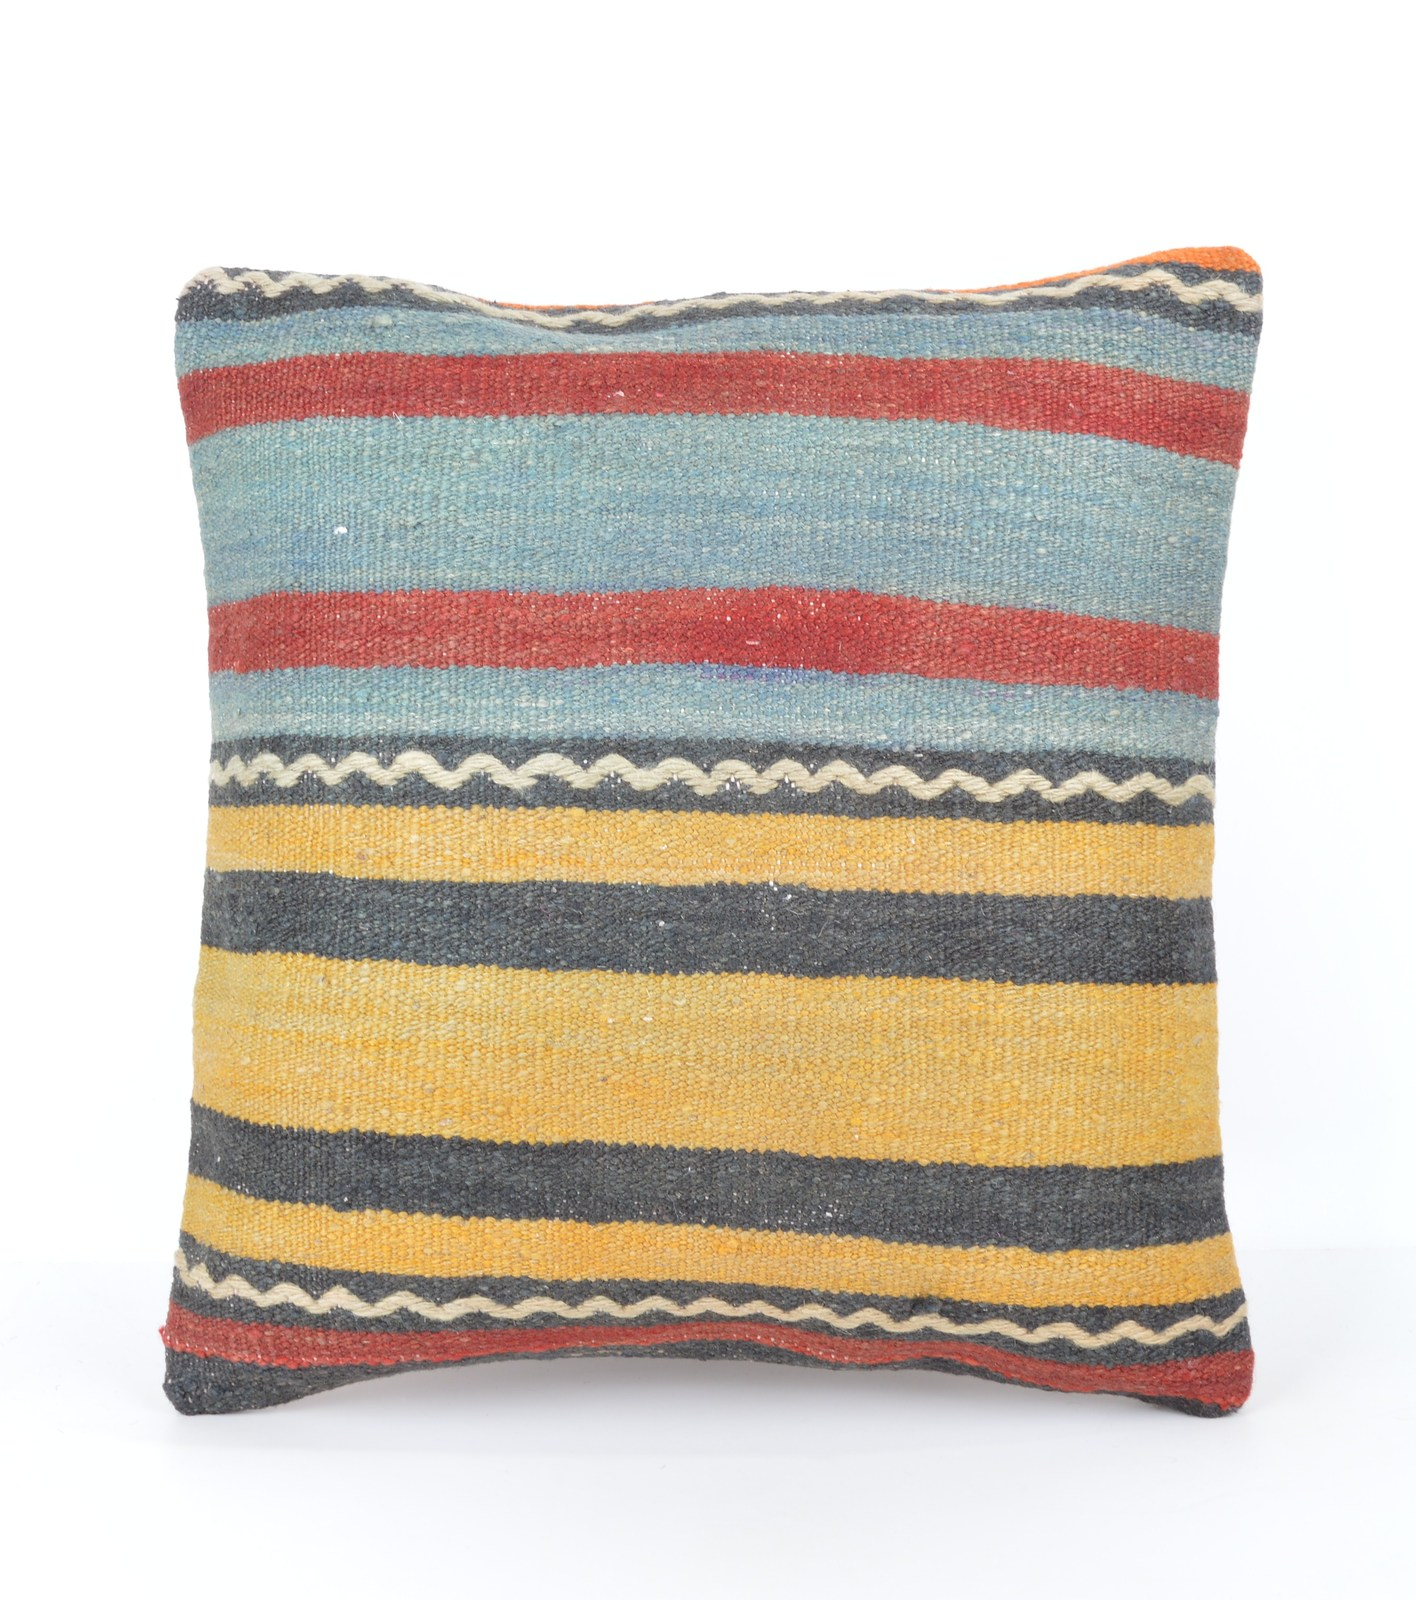 Throw Me A Pillow Coupon Code : discount kilim pillow cushion covers sale kilim throw pillows sale rug pillow - Pillows